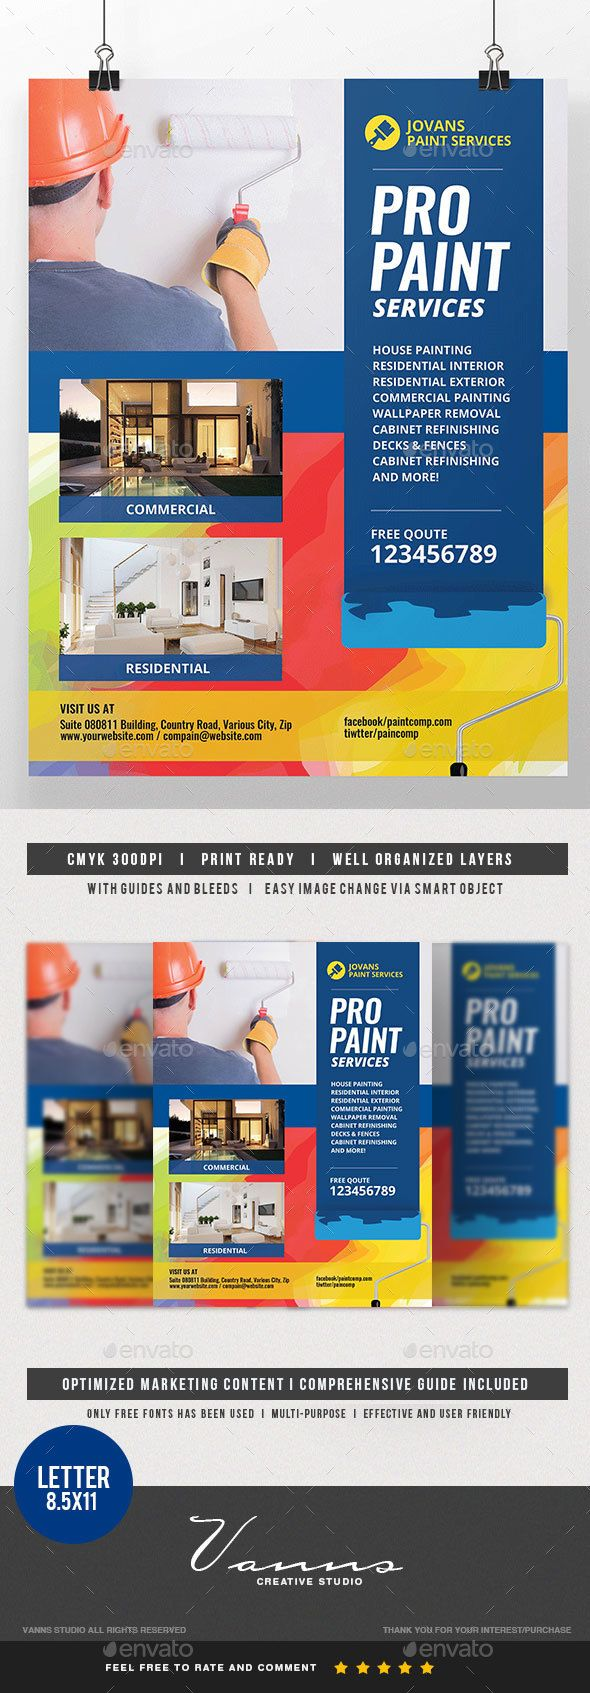 best images about corporate business flyer templates on paint services flyer template commerce flyers design